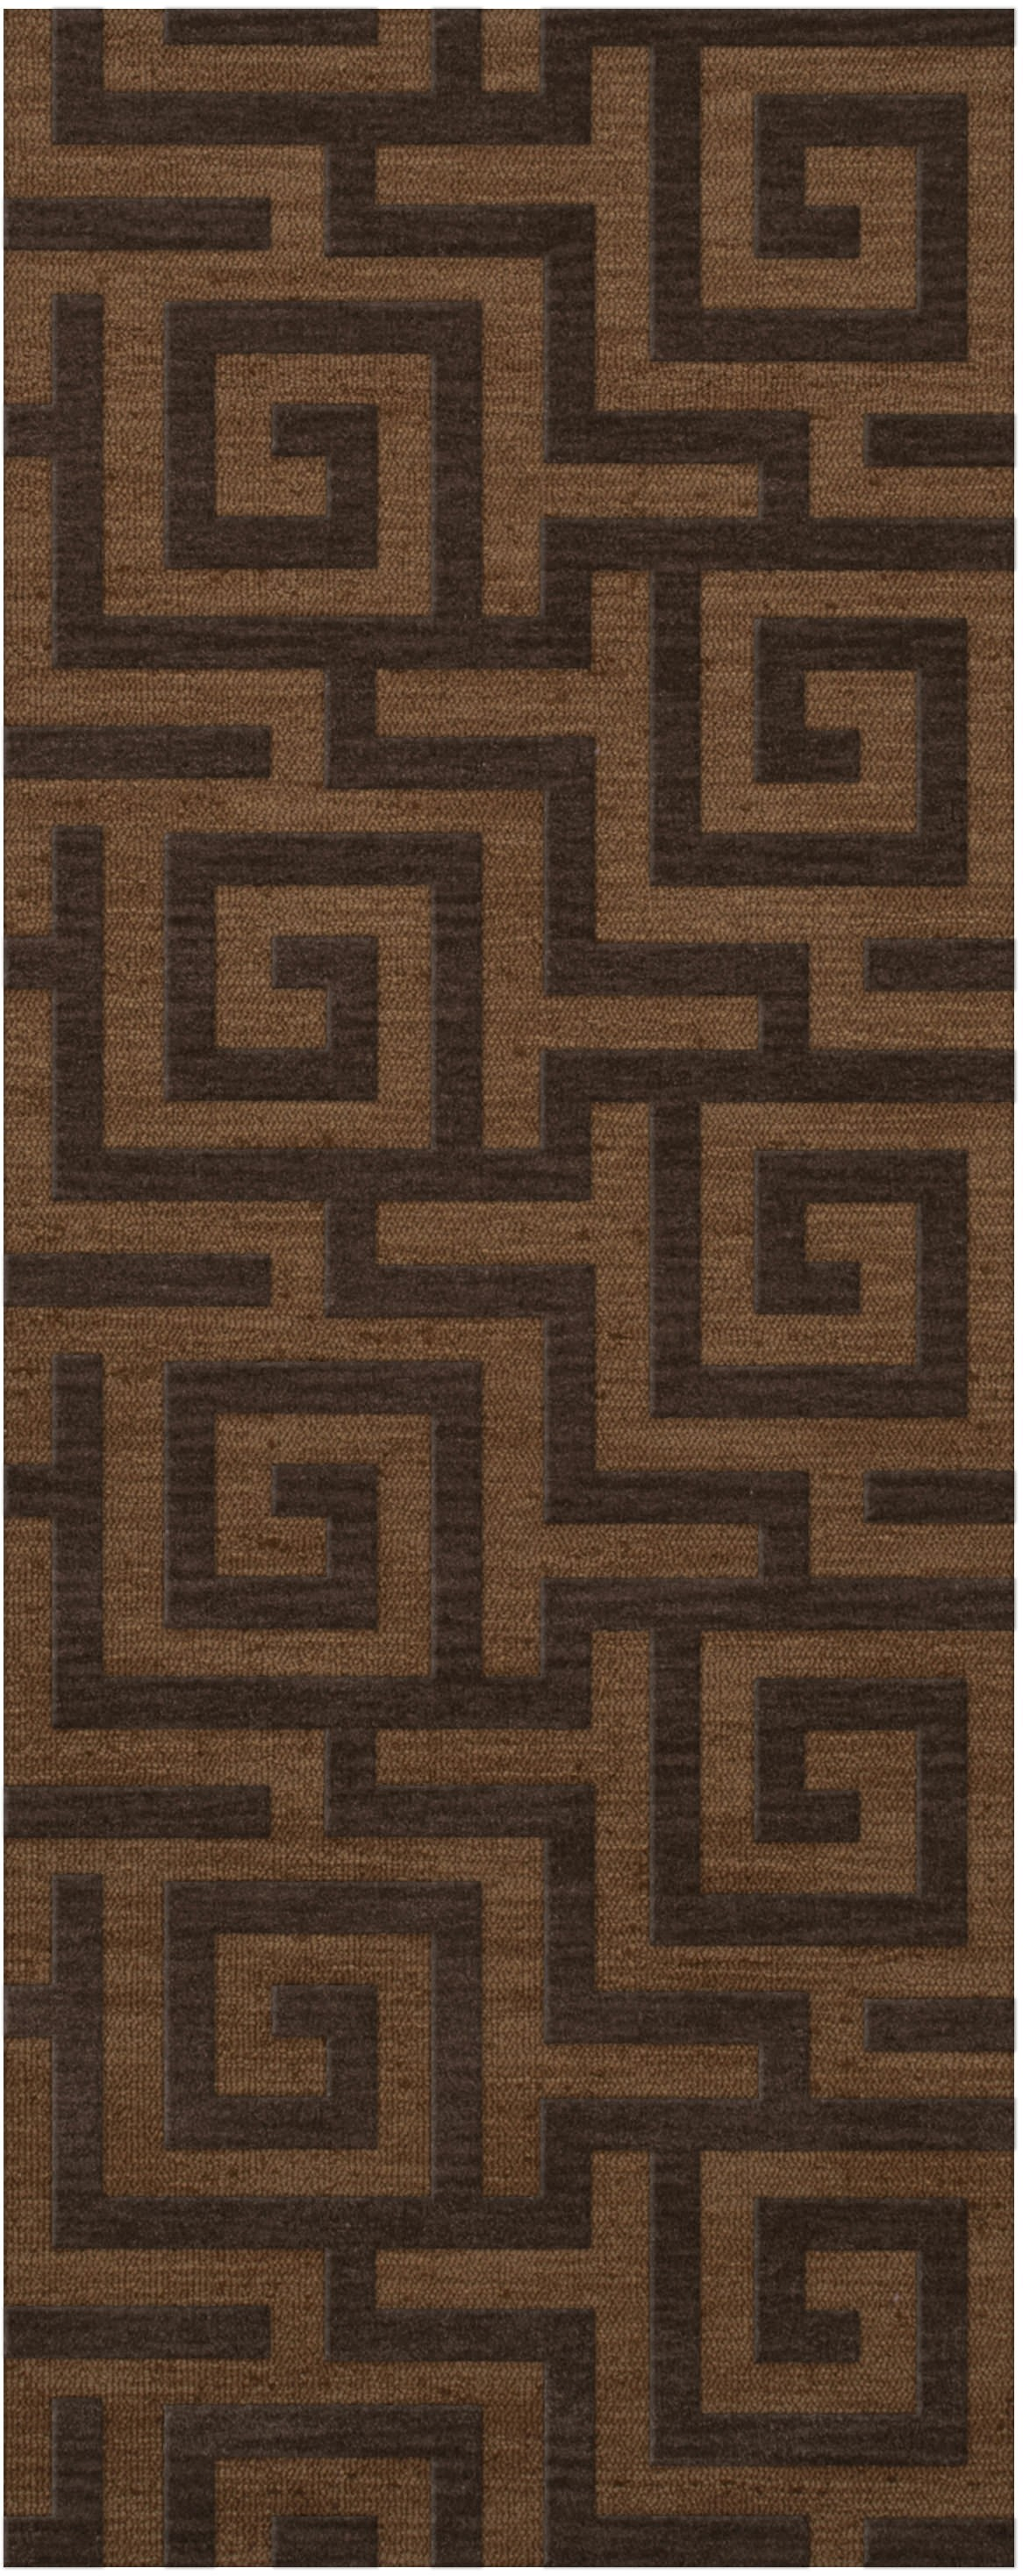 Interesting Pattern on Dalyn Rugs in brown for floor decor ideas